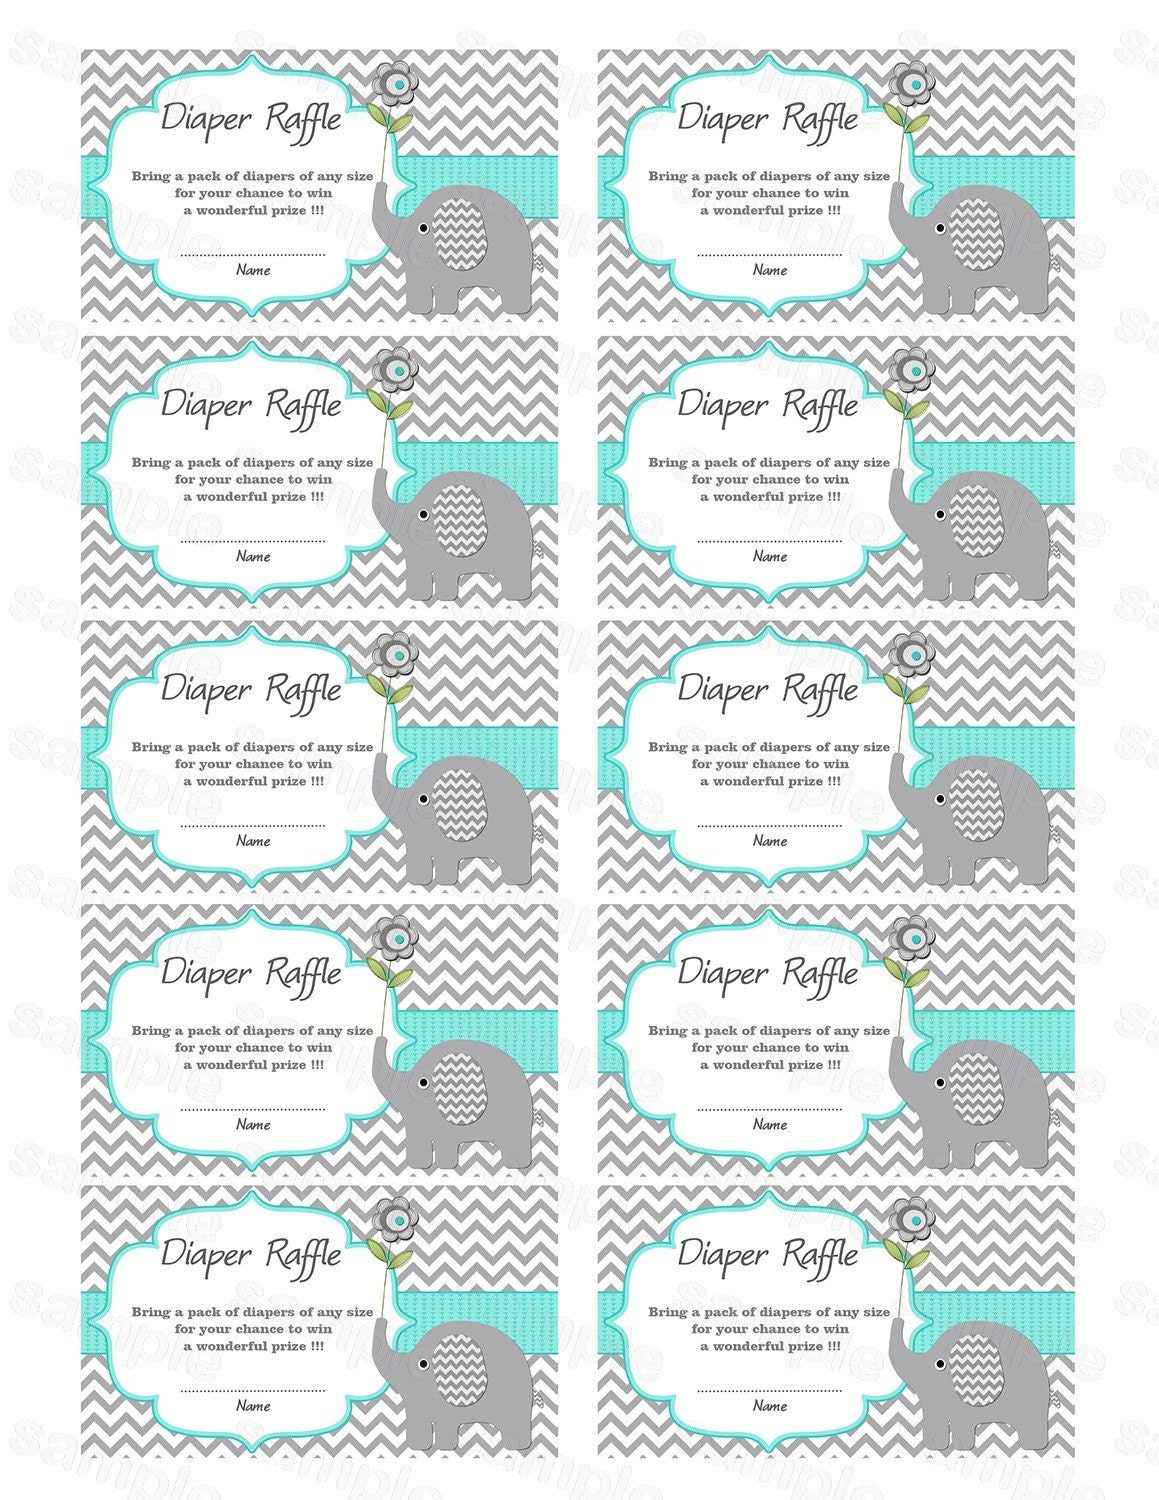 Amazing image with free printable diaper raffle ticket template